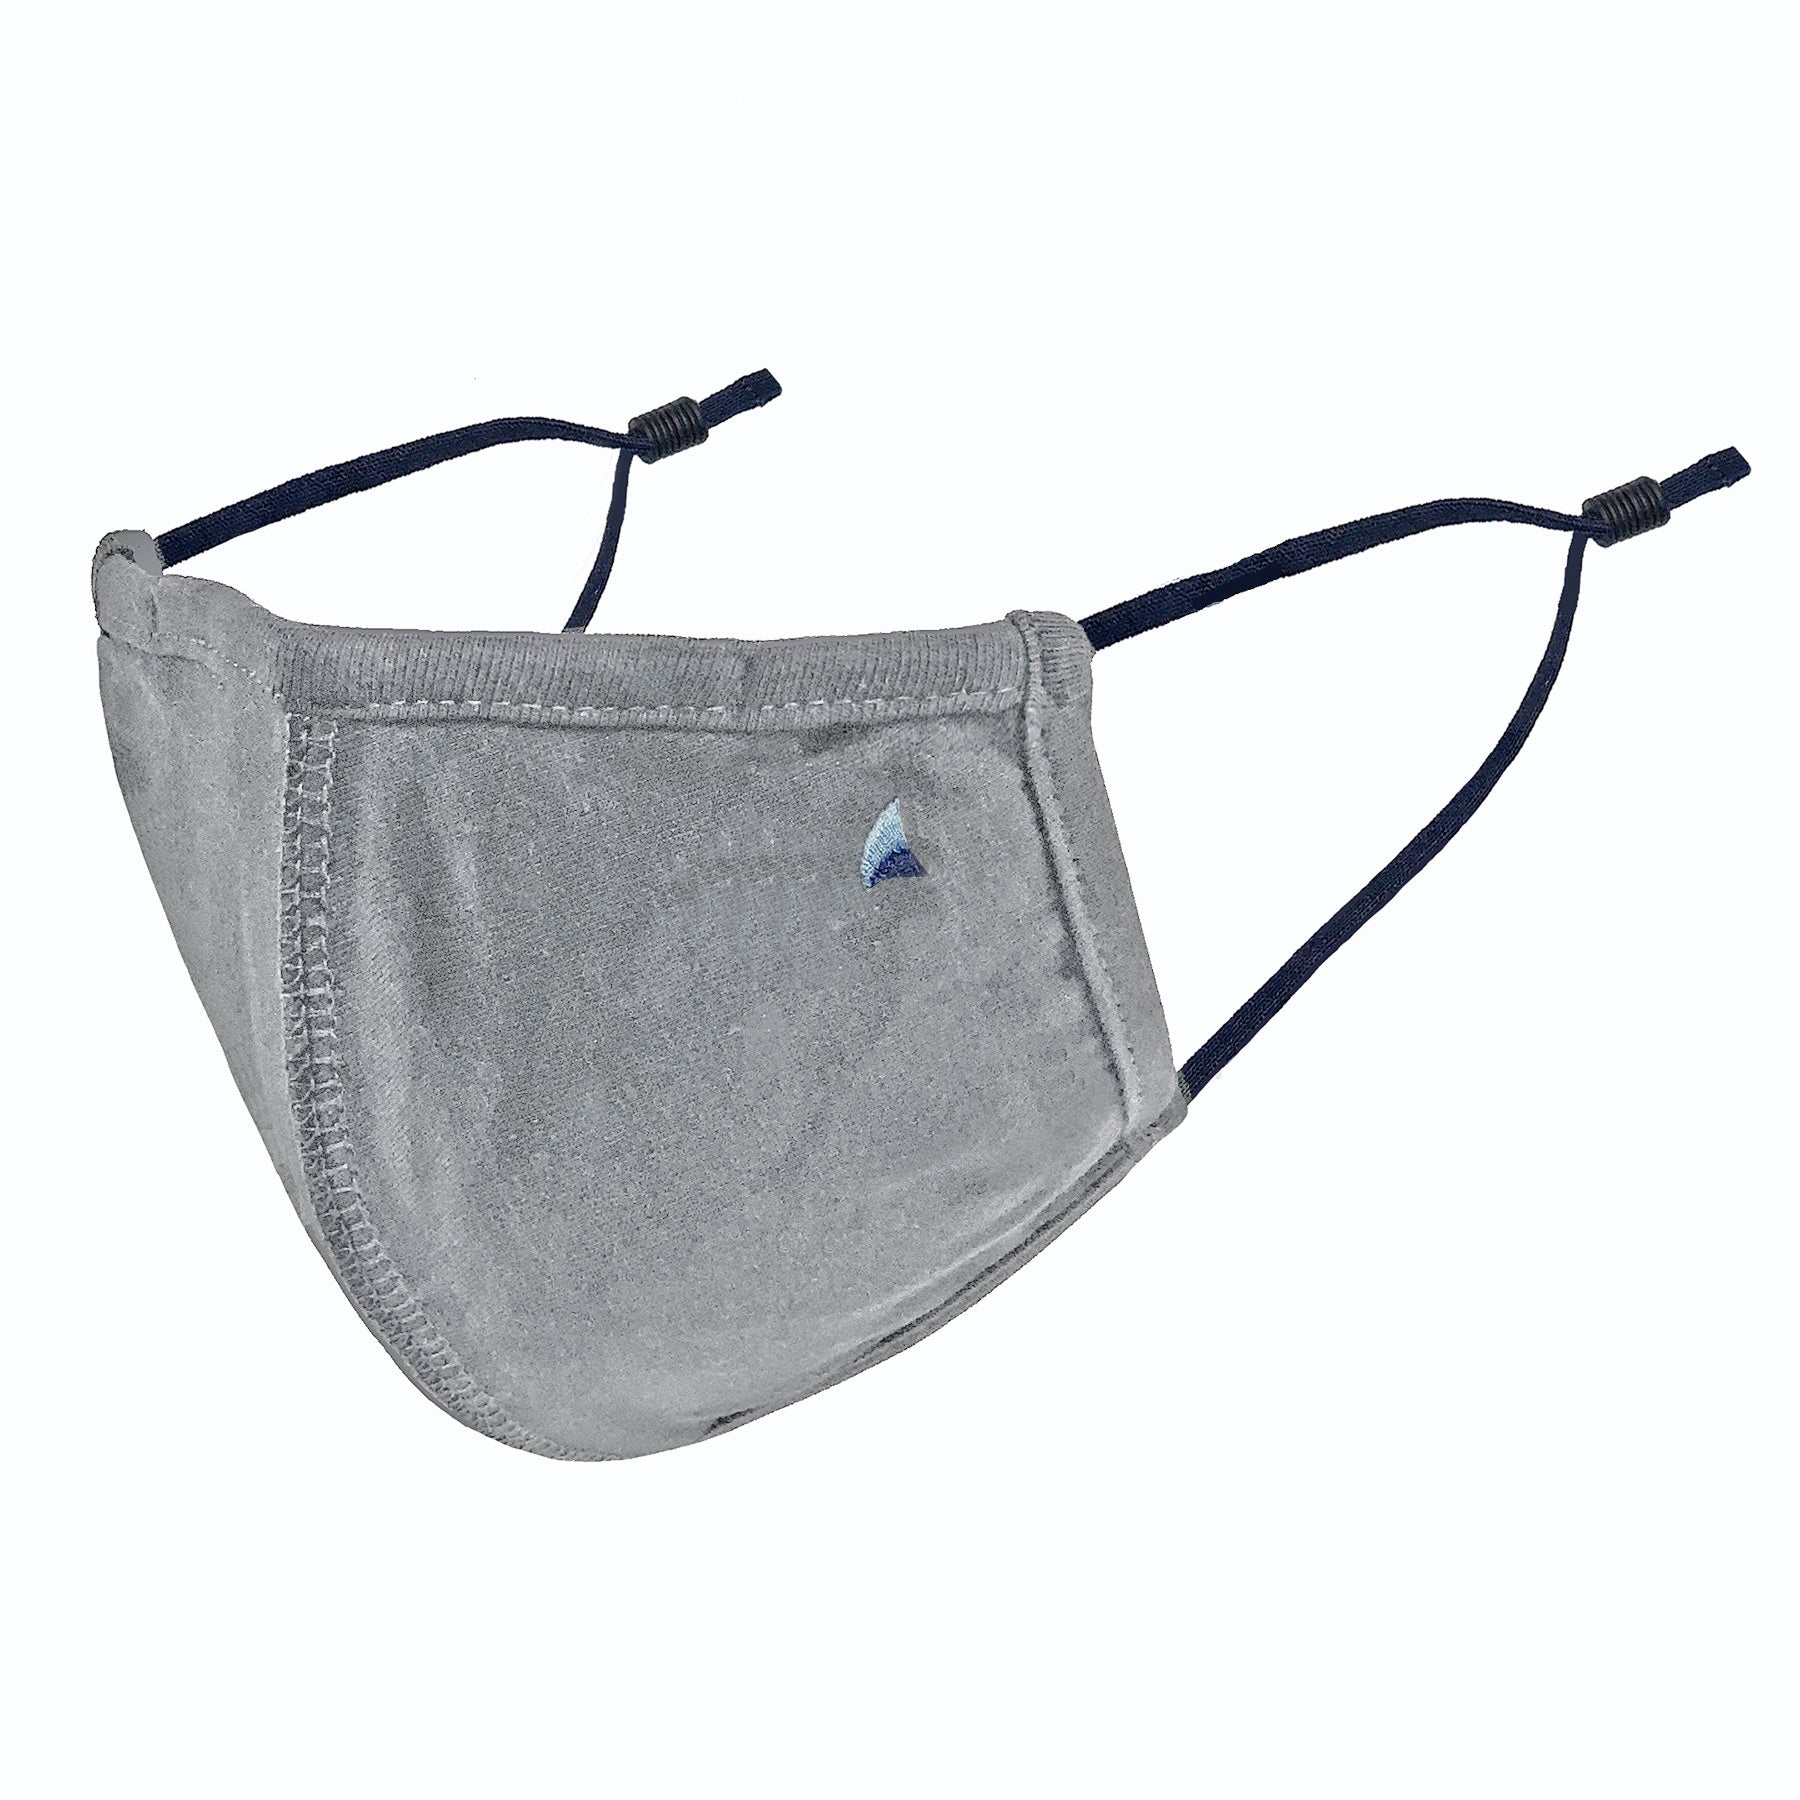 PURETEC COOL™ NANOFIBER FILTER MASK in GRAY FLANNEL